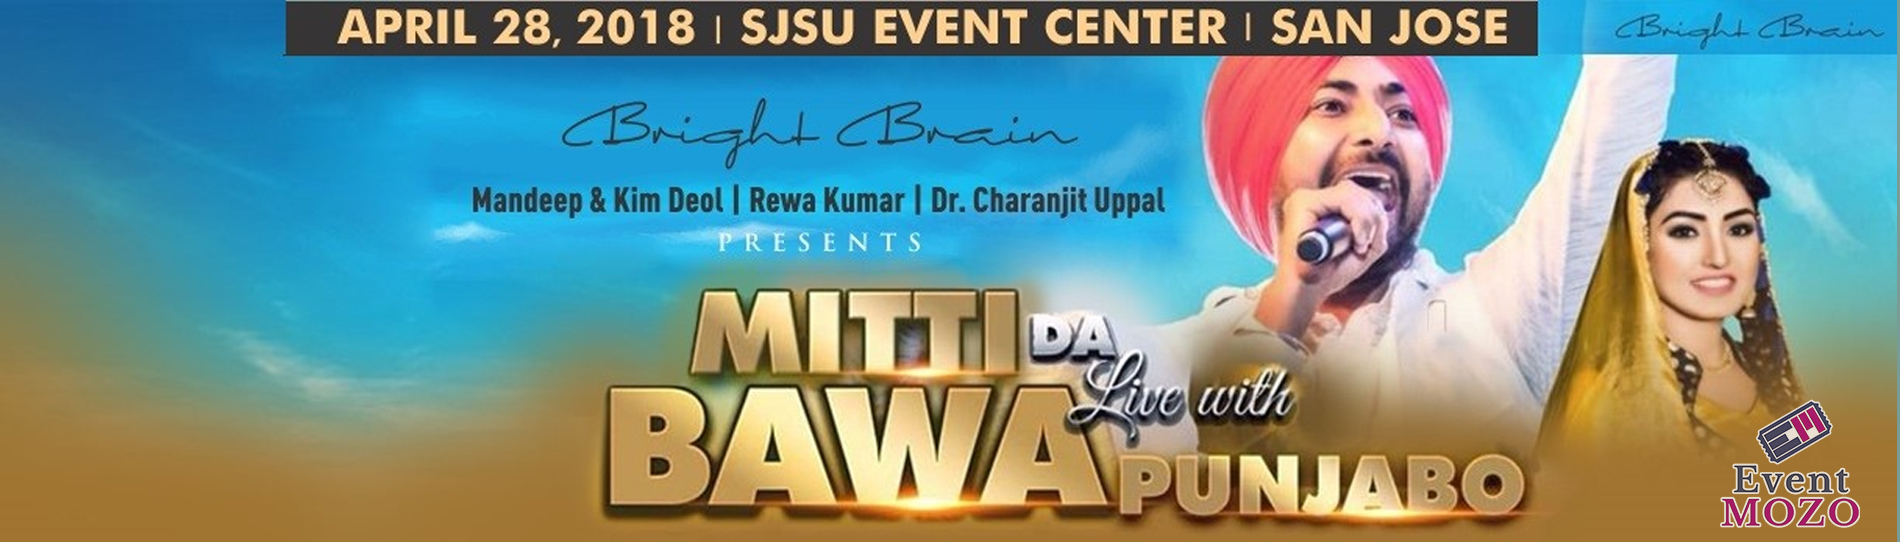 EventMozo Ranjit Bawa & Anmol Gagan Mann Live in Bay Area